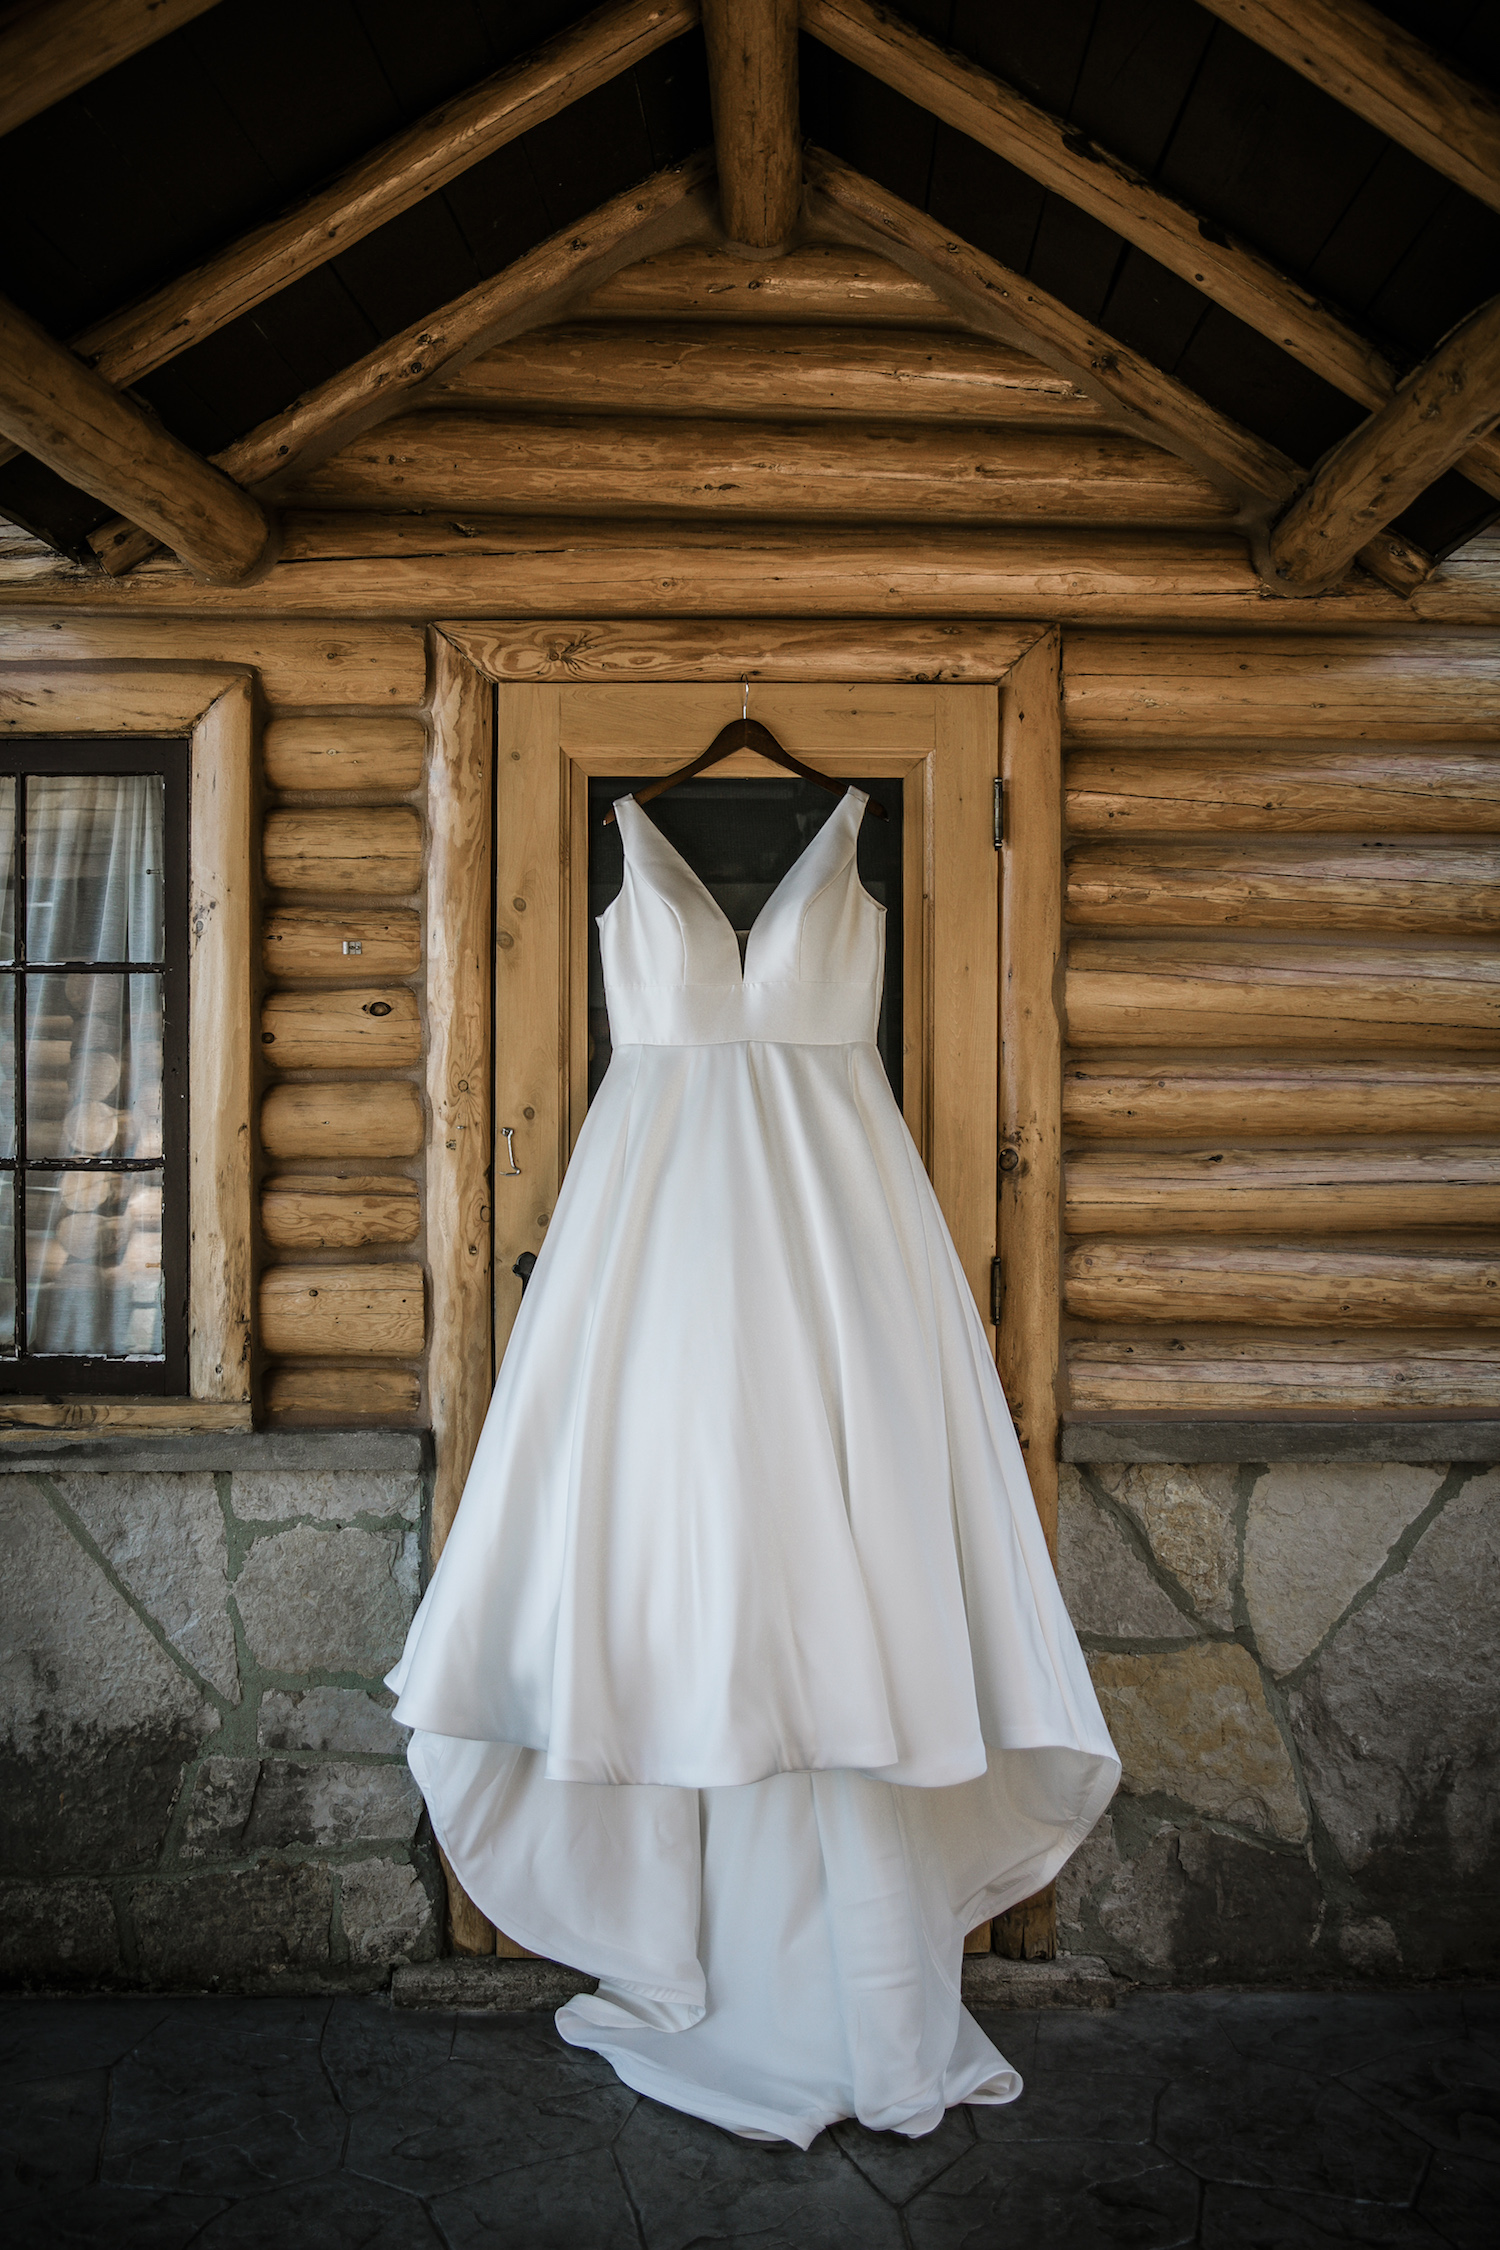 Bride's dress hanging on cabin door